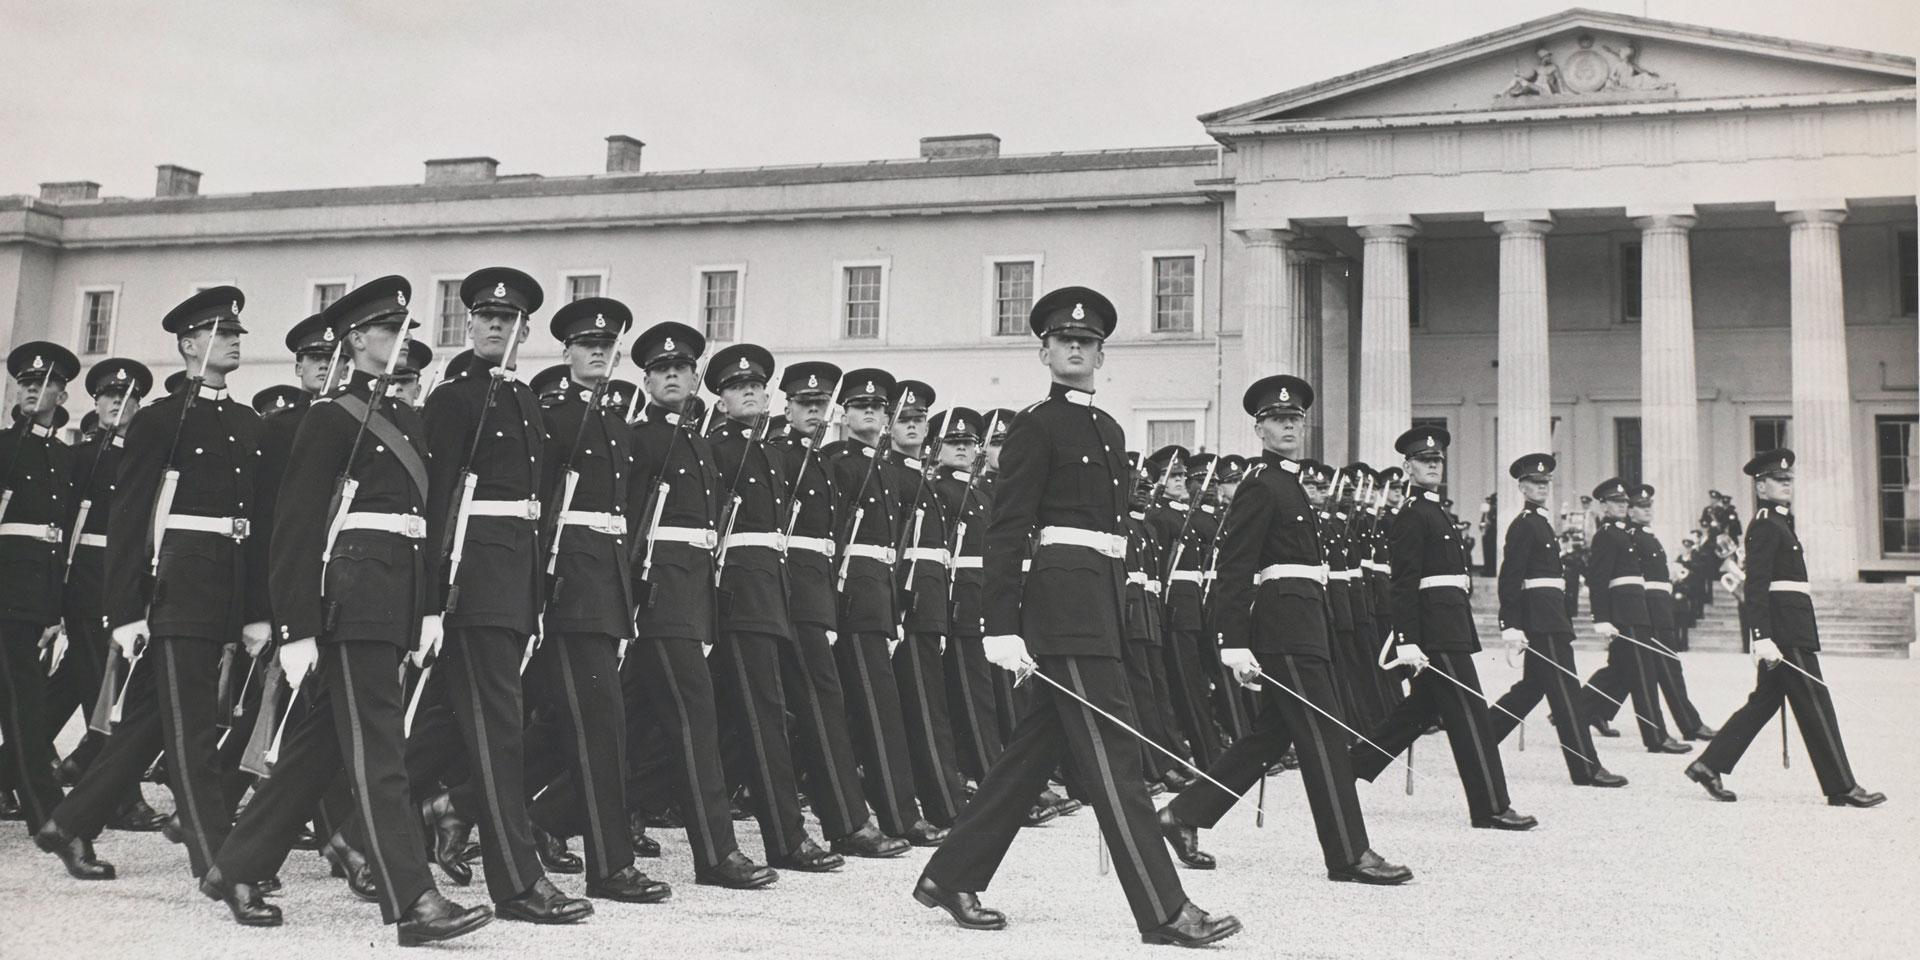 British officers parade outside of the Royal Military Academy Sandhurst in black and white for A Collected Man London